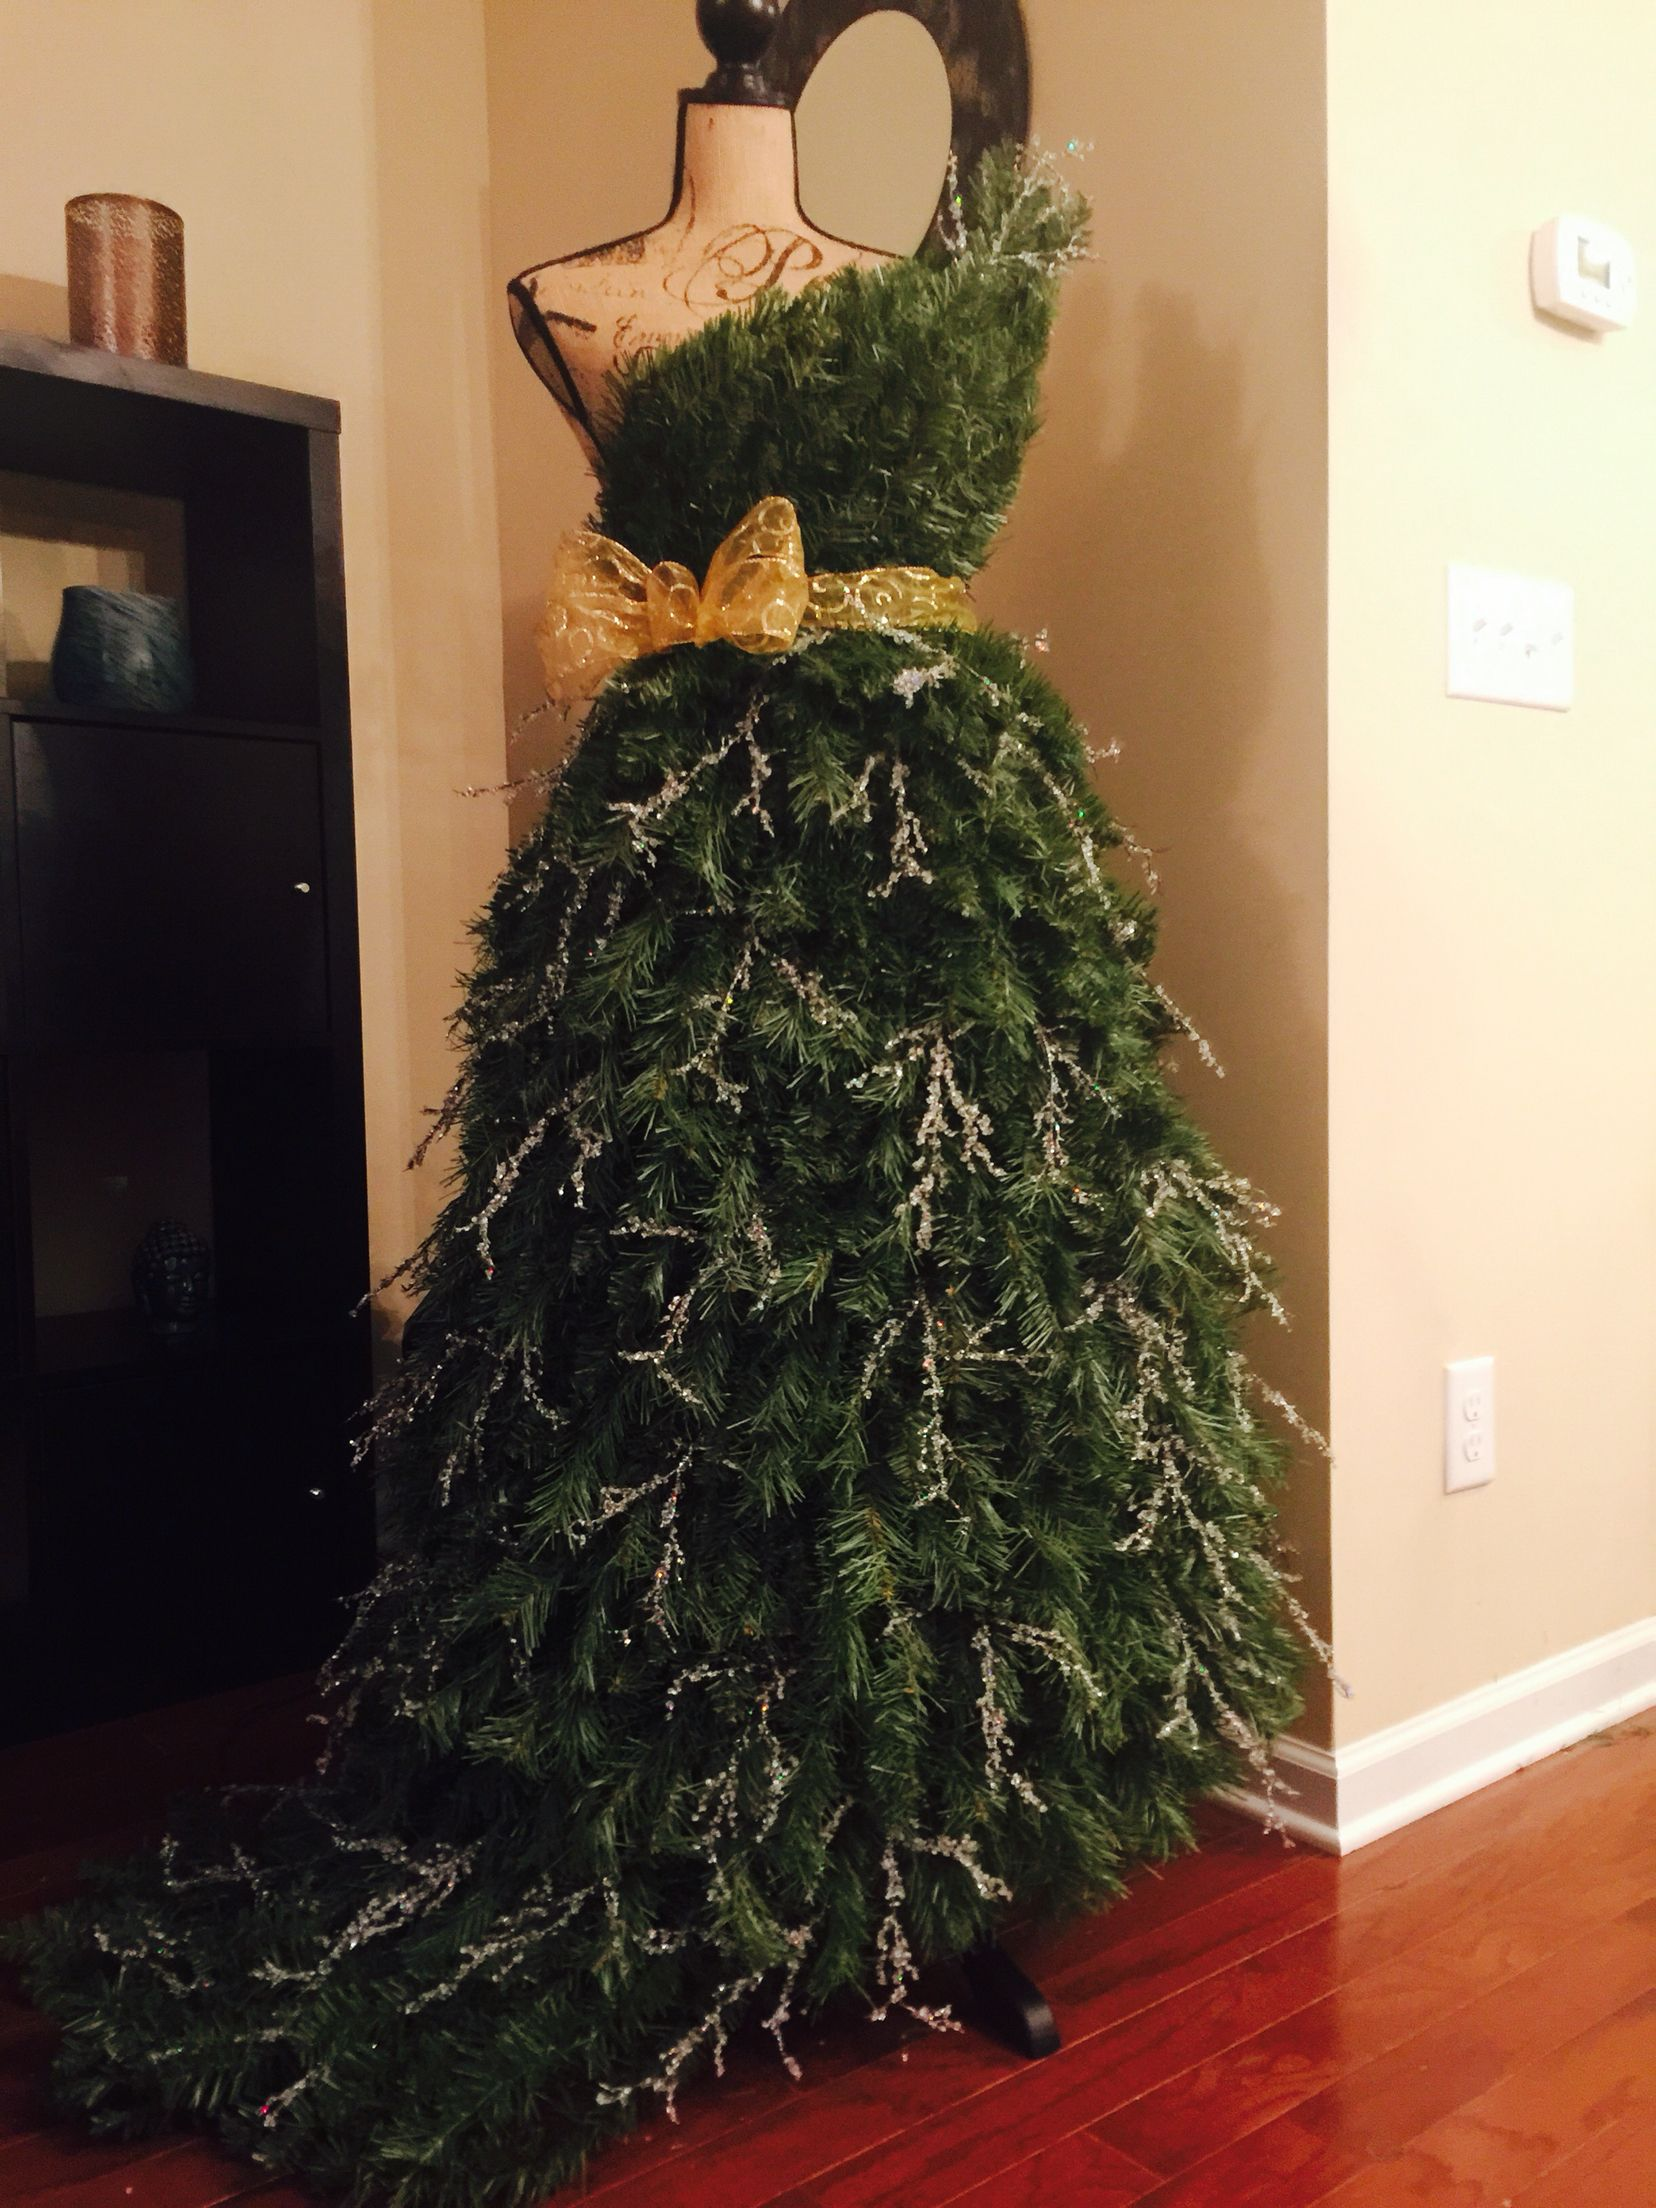 Taking A Dress Form Chicken Wire Floral Wire And Disassembling Two 7 1 2 Foot Christmas Trees To Make A Tree Dress Tree Dress Diy Holiday Decor Floral Wire